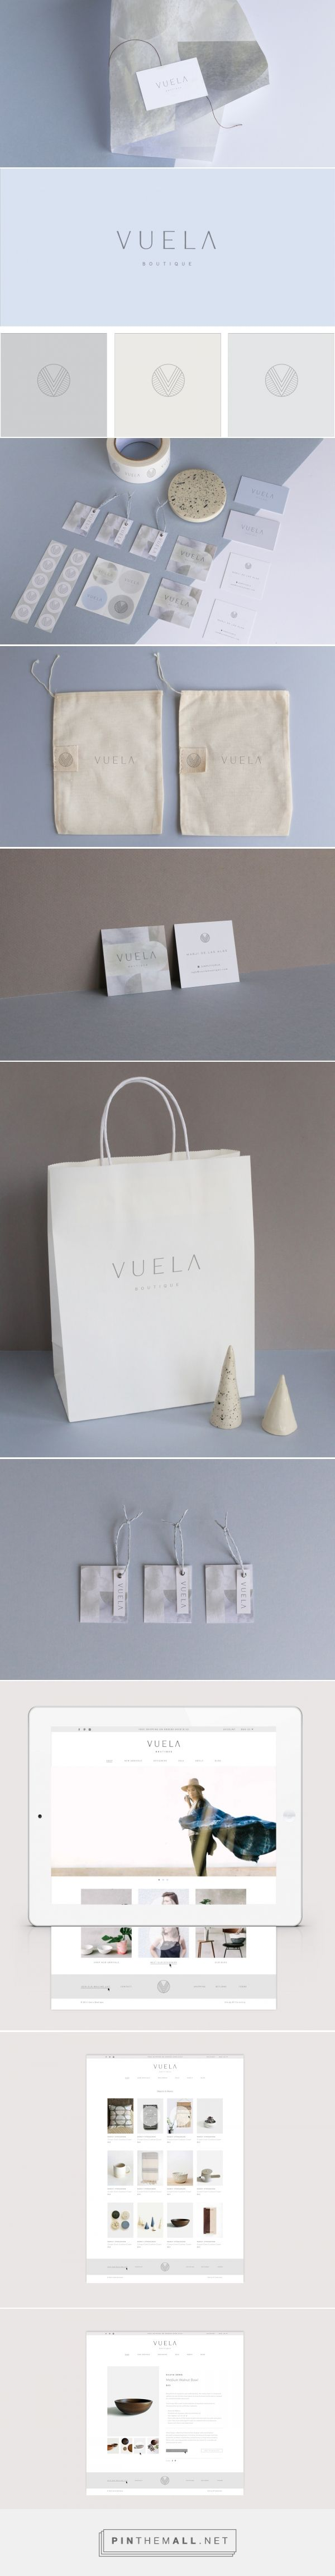 Vuela Boutique Branding by Kati Forner | Fivestar Branding – Design and Branding Agency & Inspiration Gallery